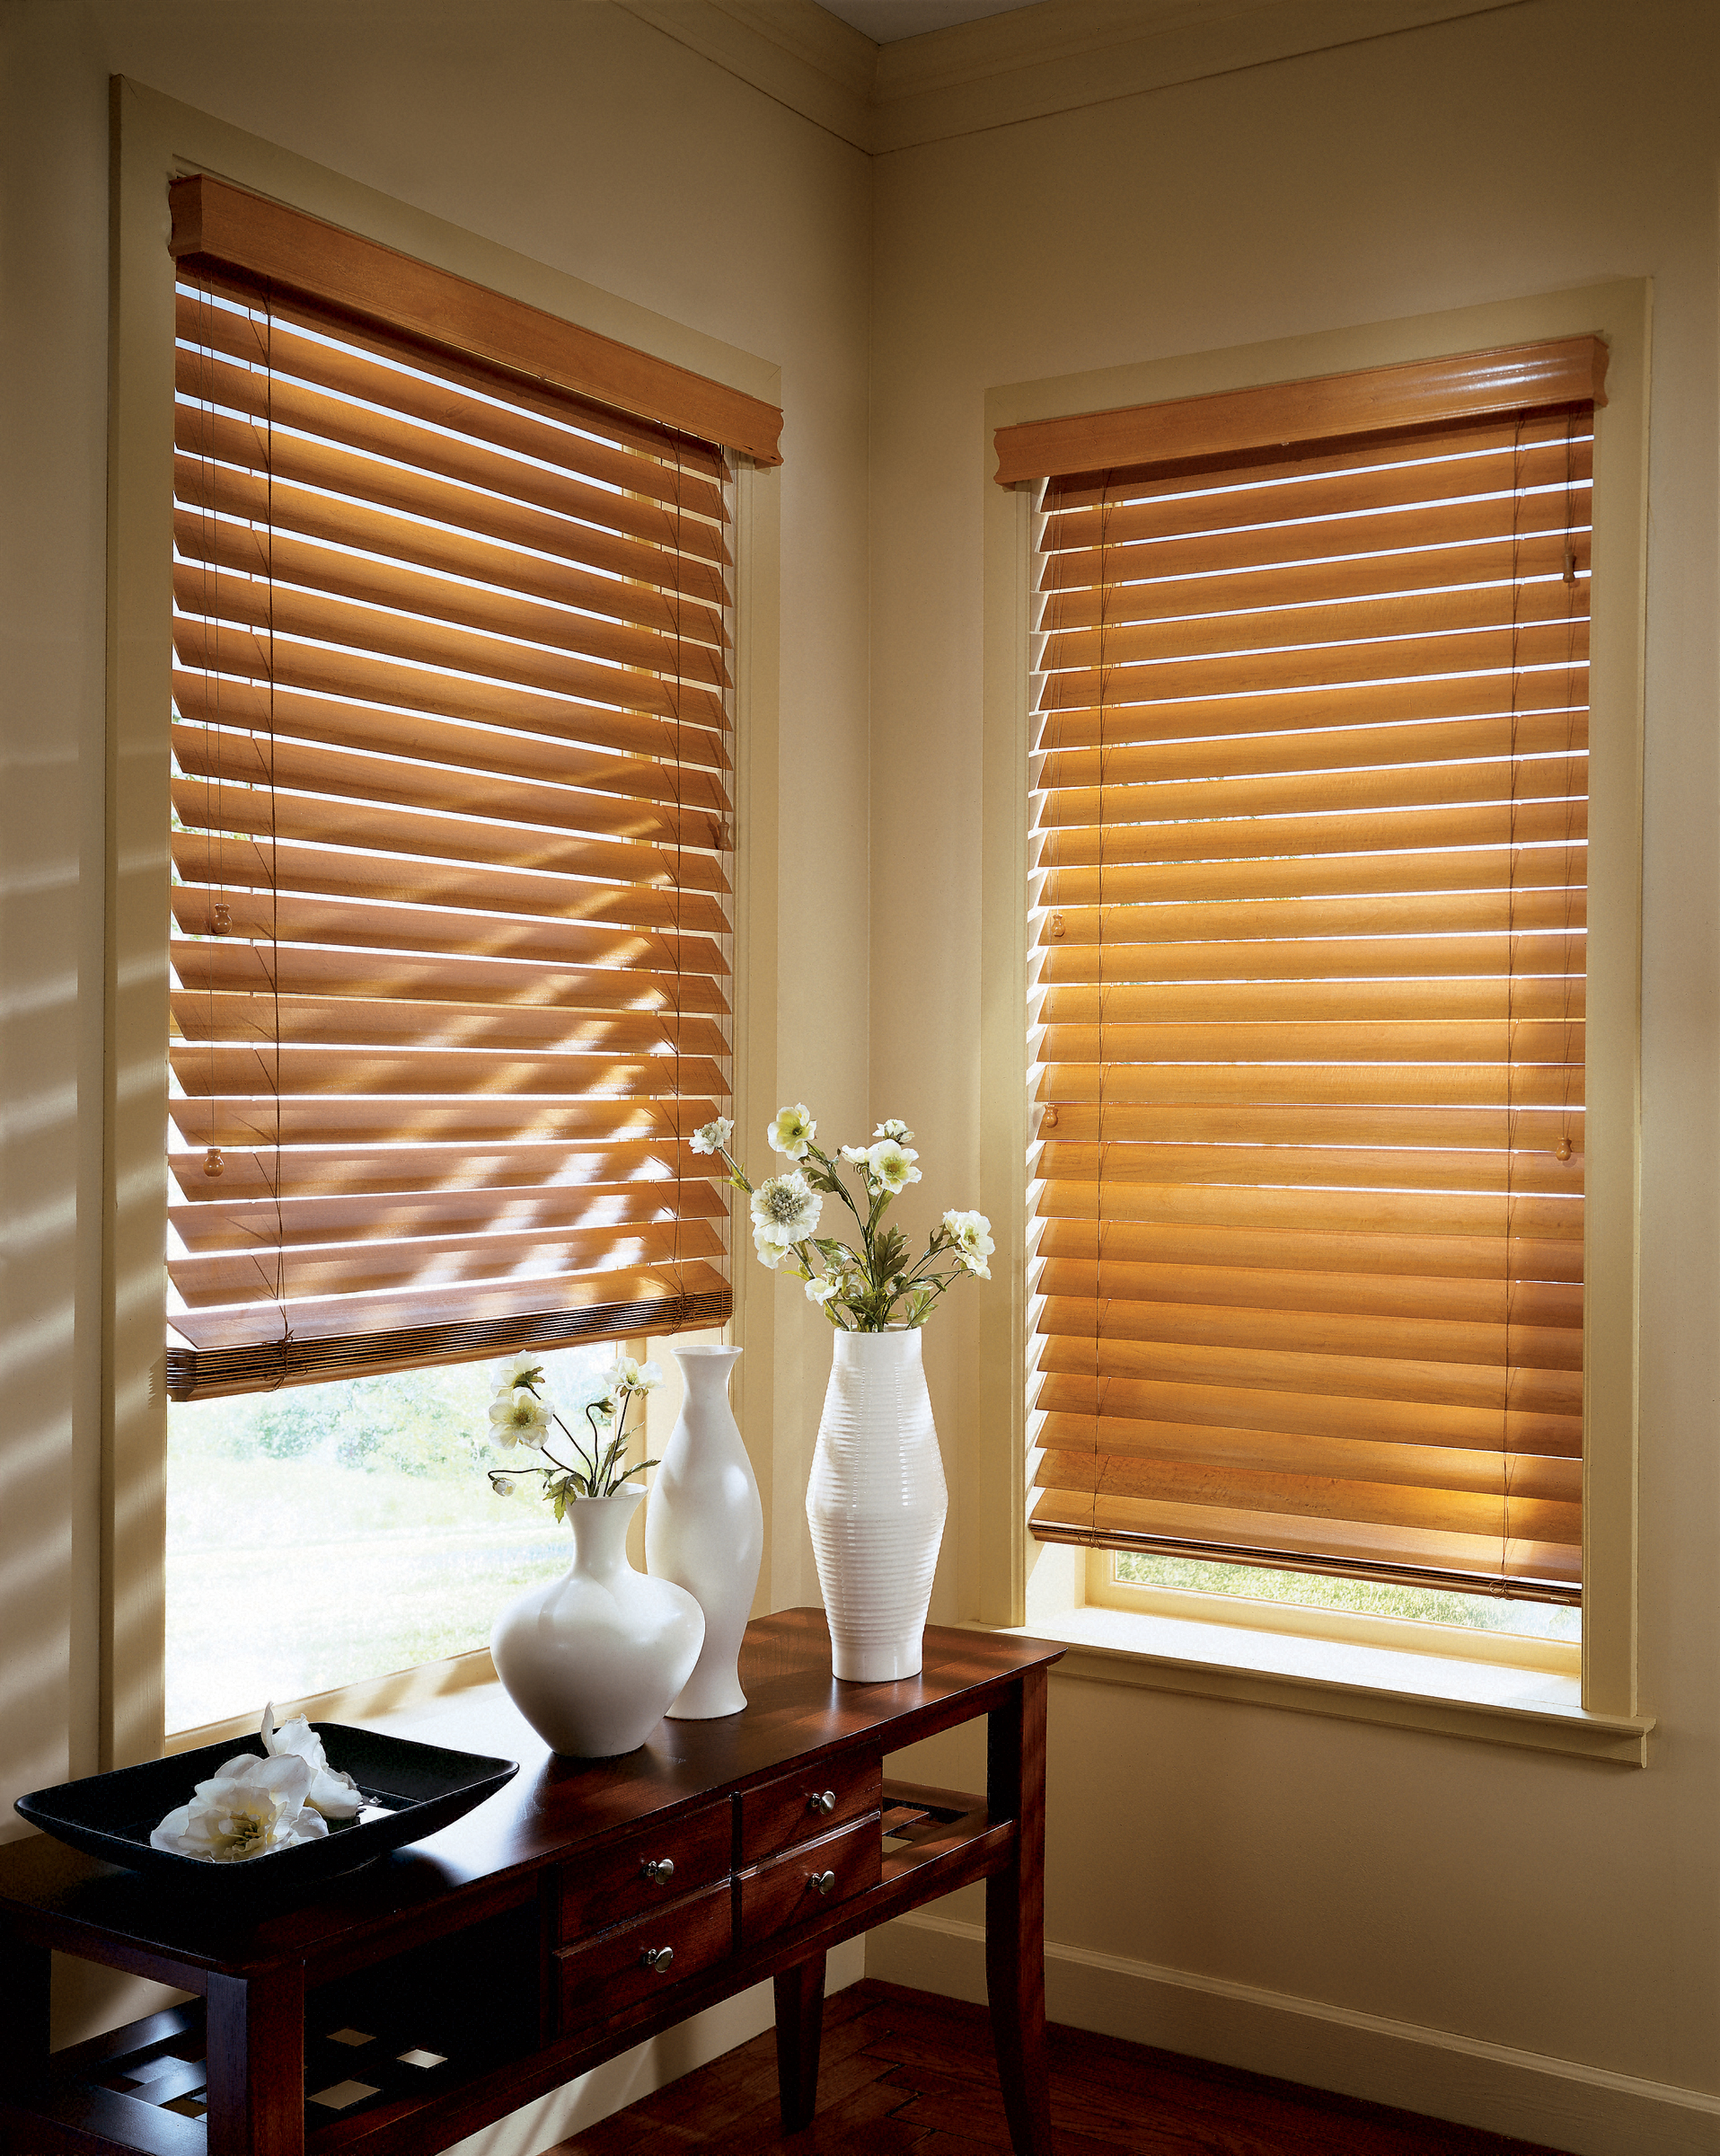 double and us drapery rod blinds innovations t are designer roller home more